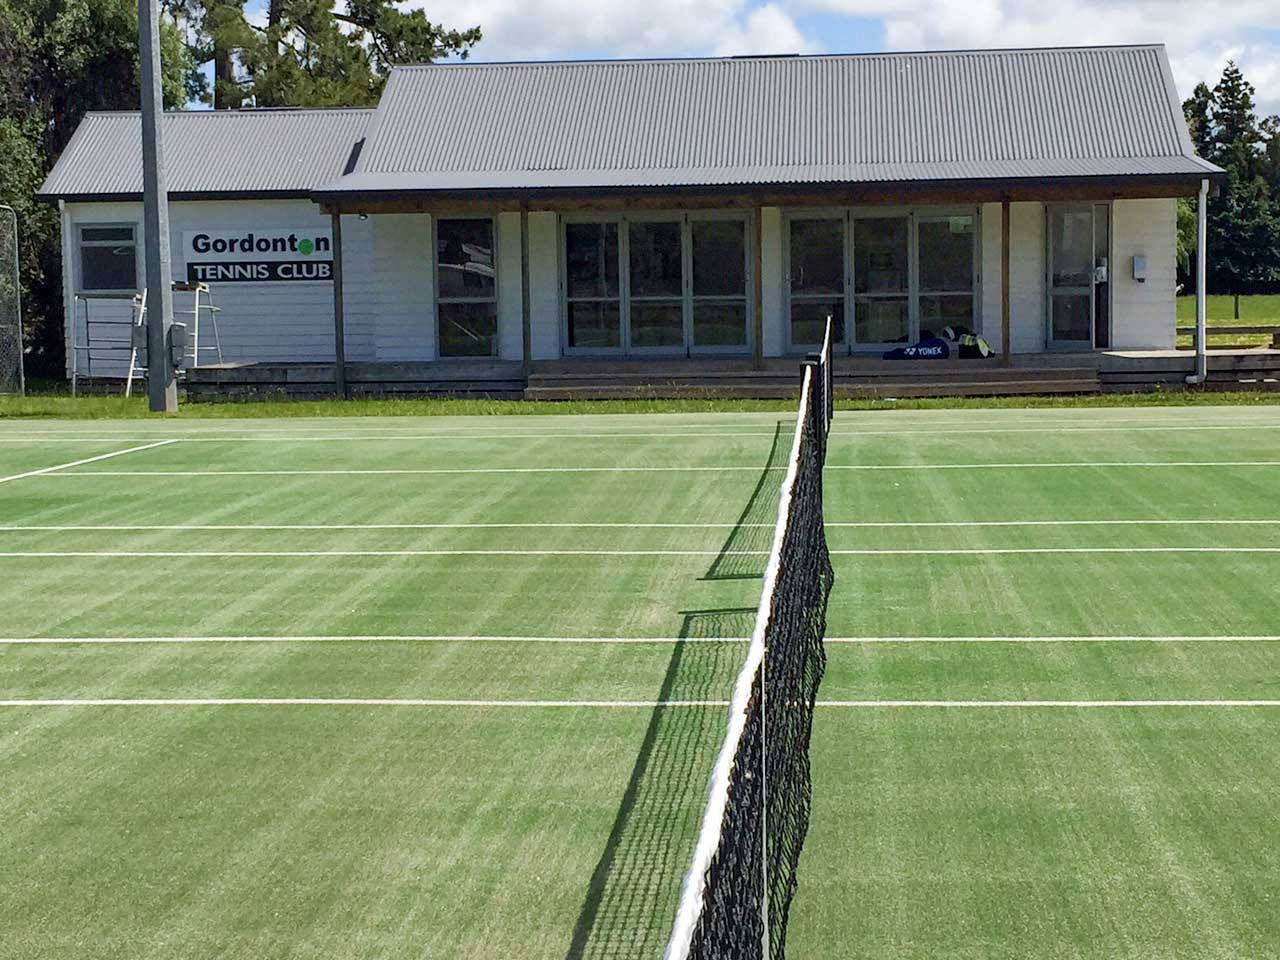 Gordonton Tennis Club artificial turf